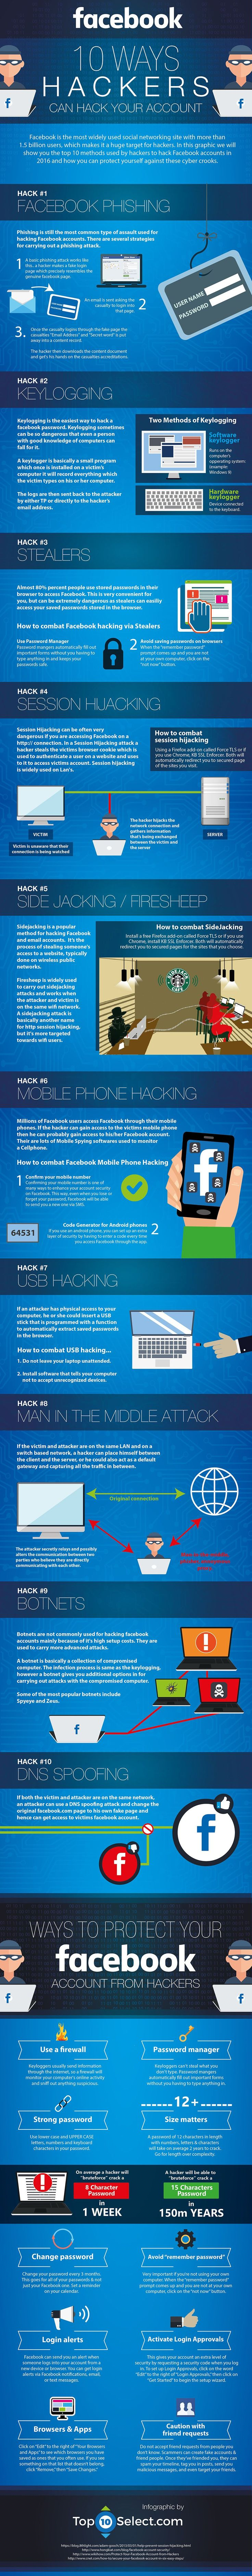 10 Ways Hackers Can Hack A Facebook Account and How To Protect It (infographic)